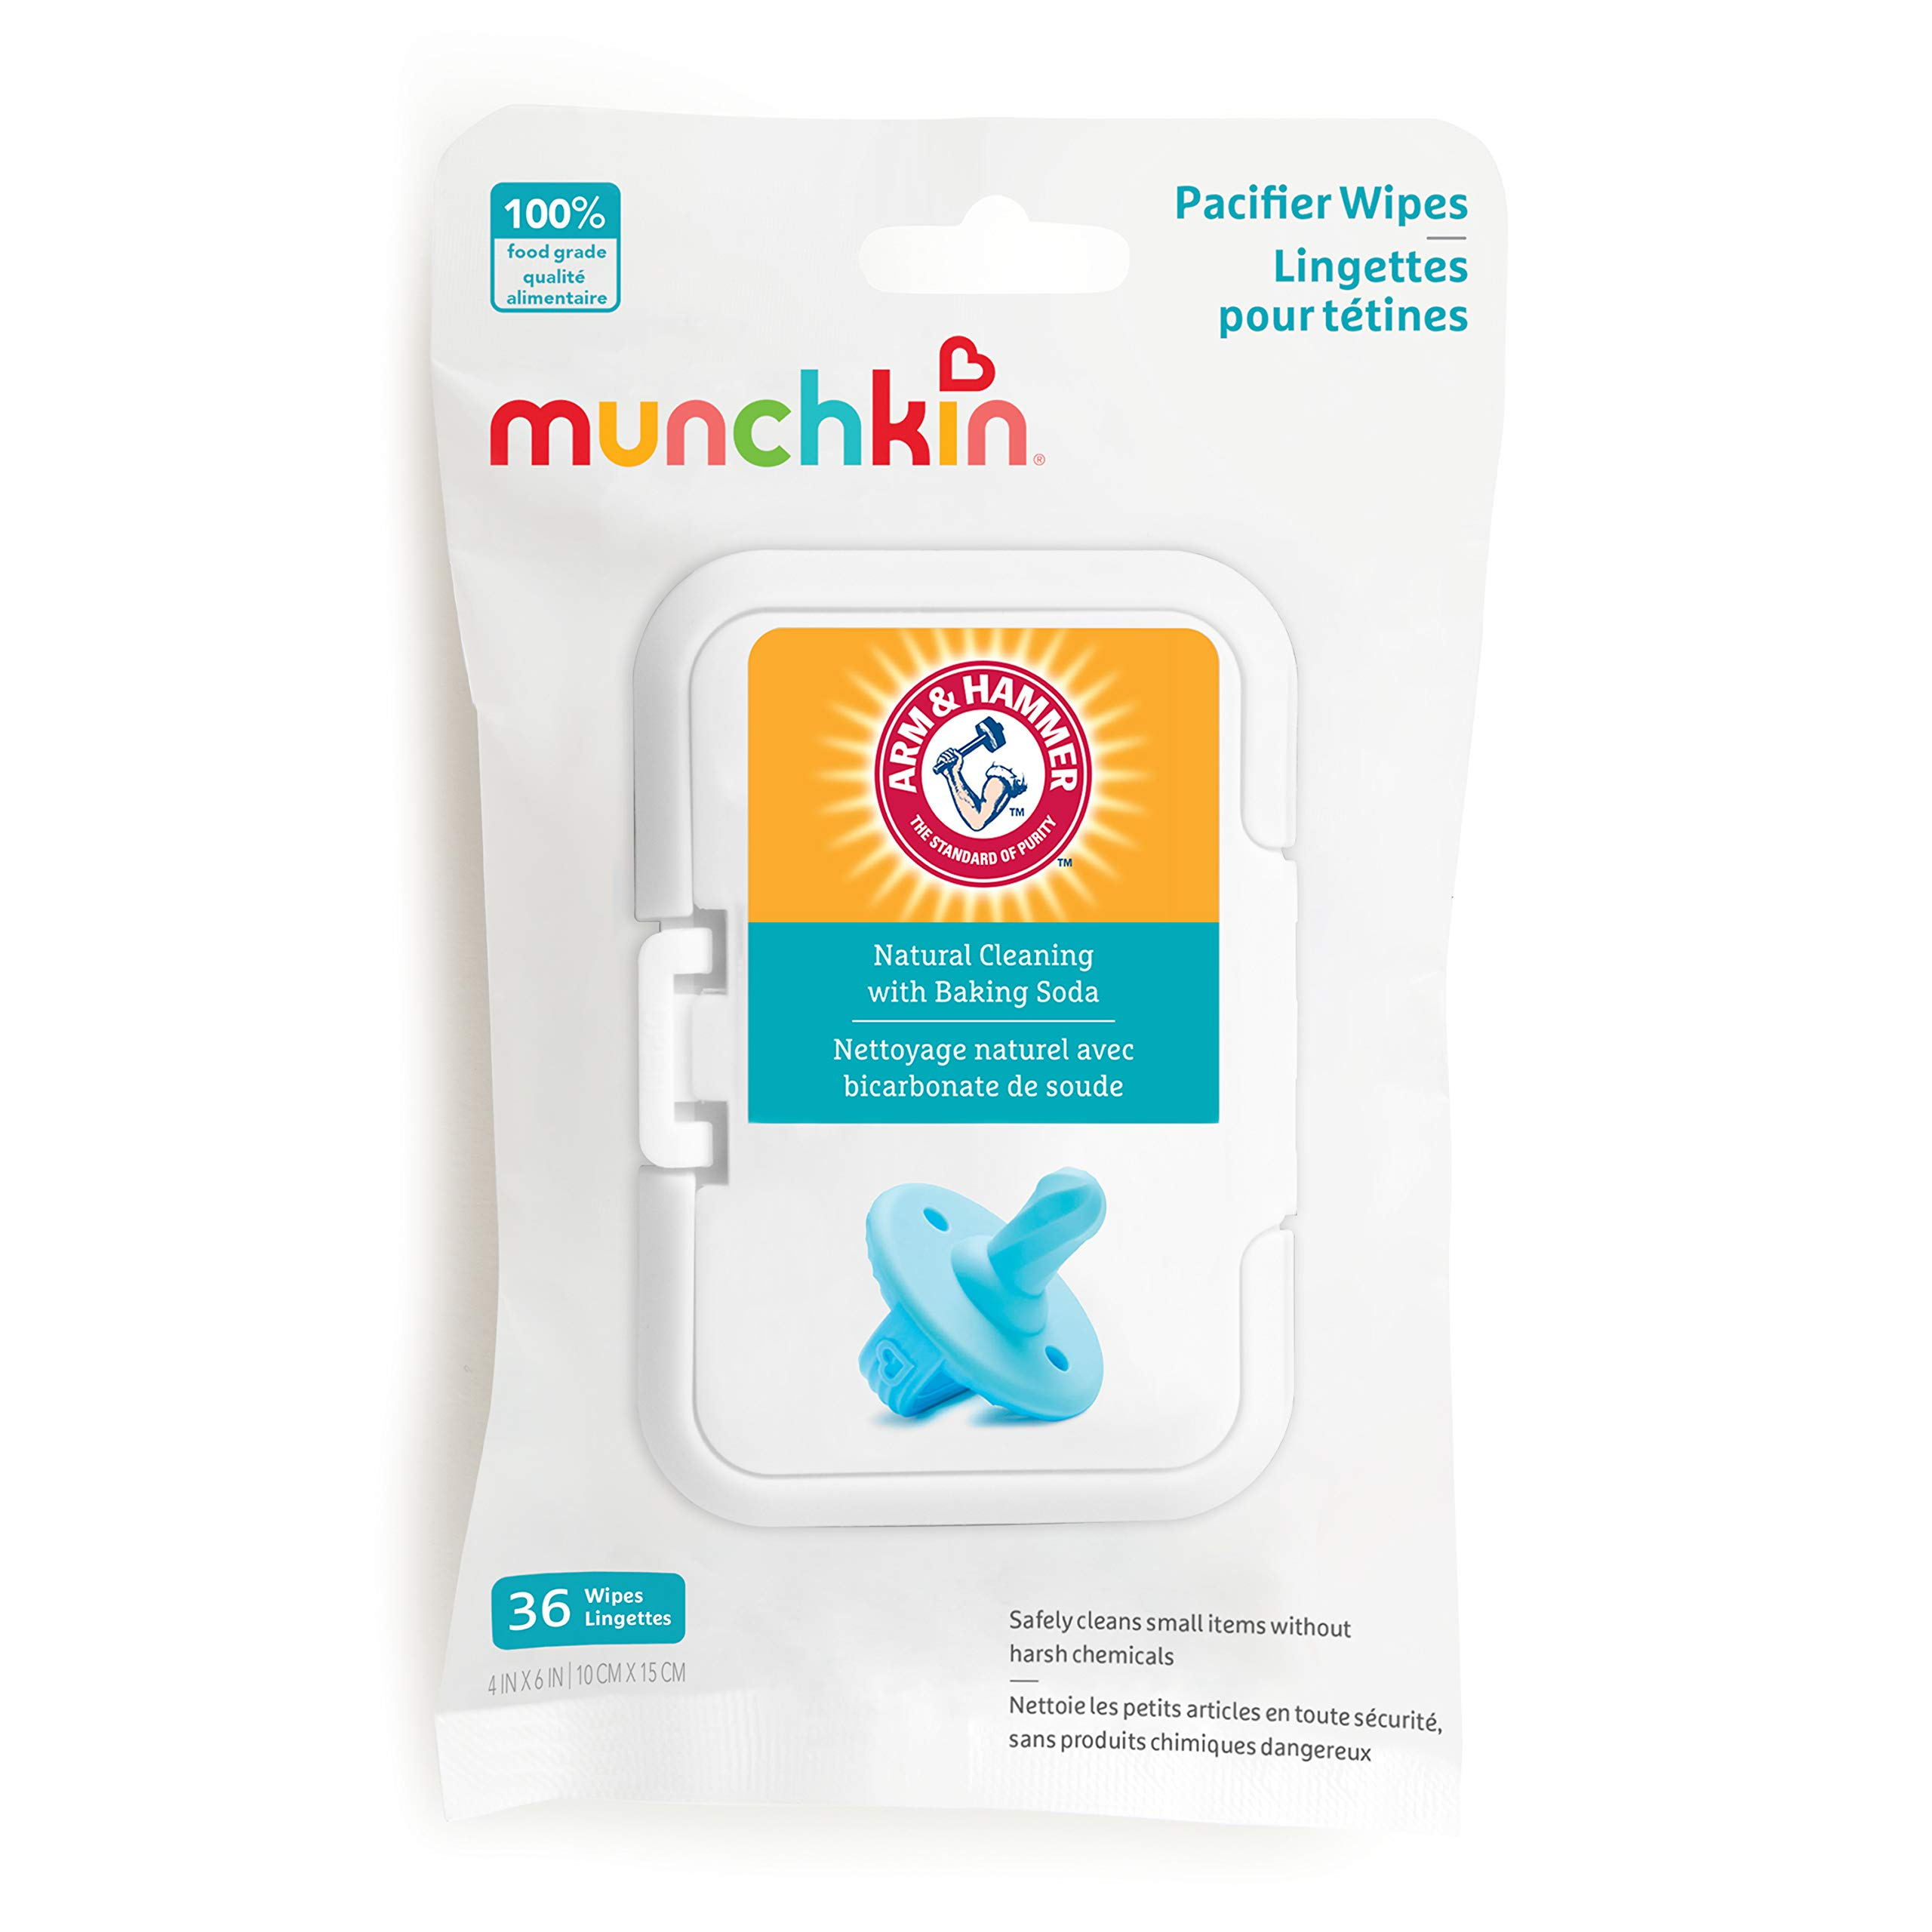 Munchkin Arm & Hammer Pacifier Wipes, 1 Pack, 36 Wipes